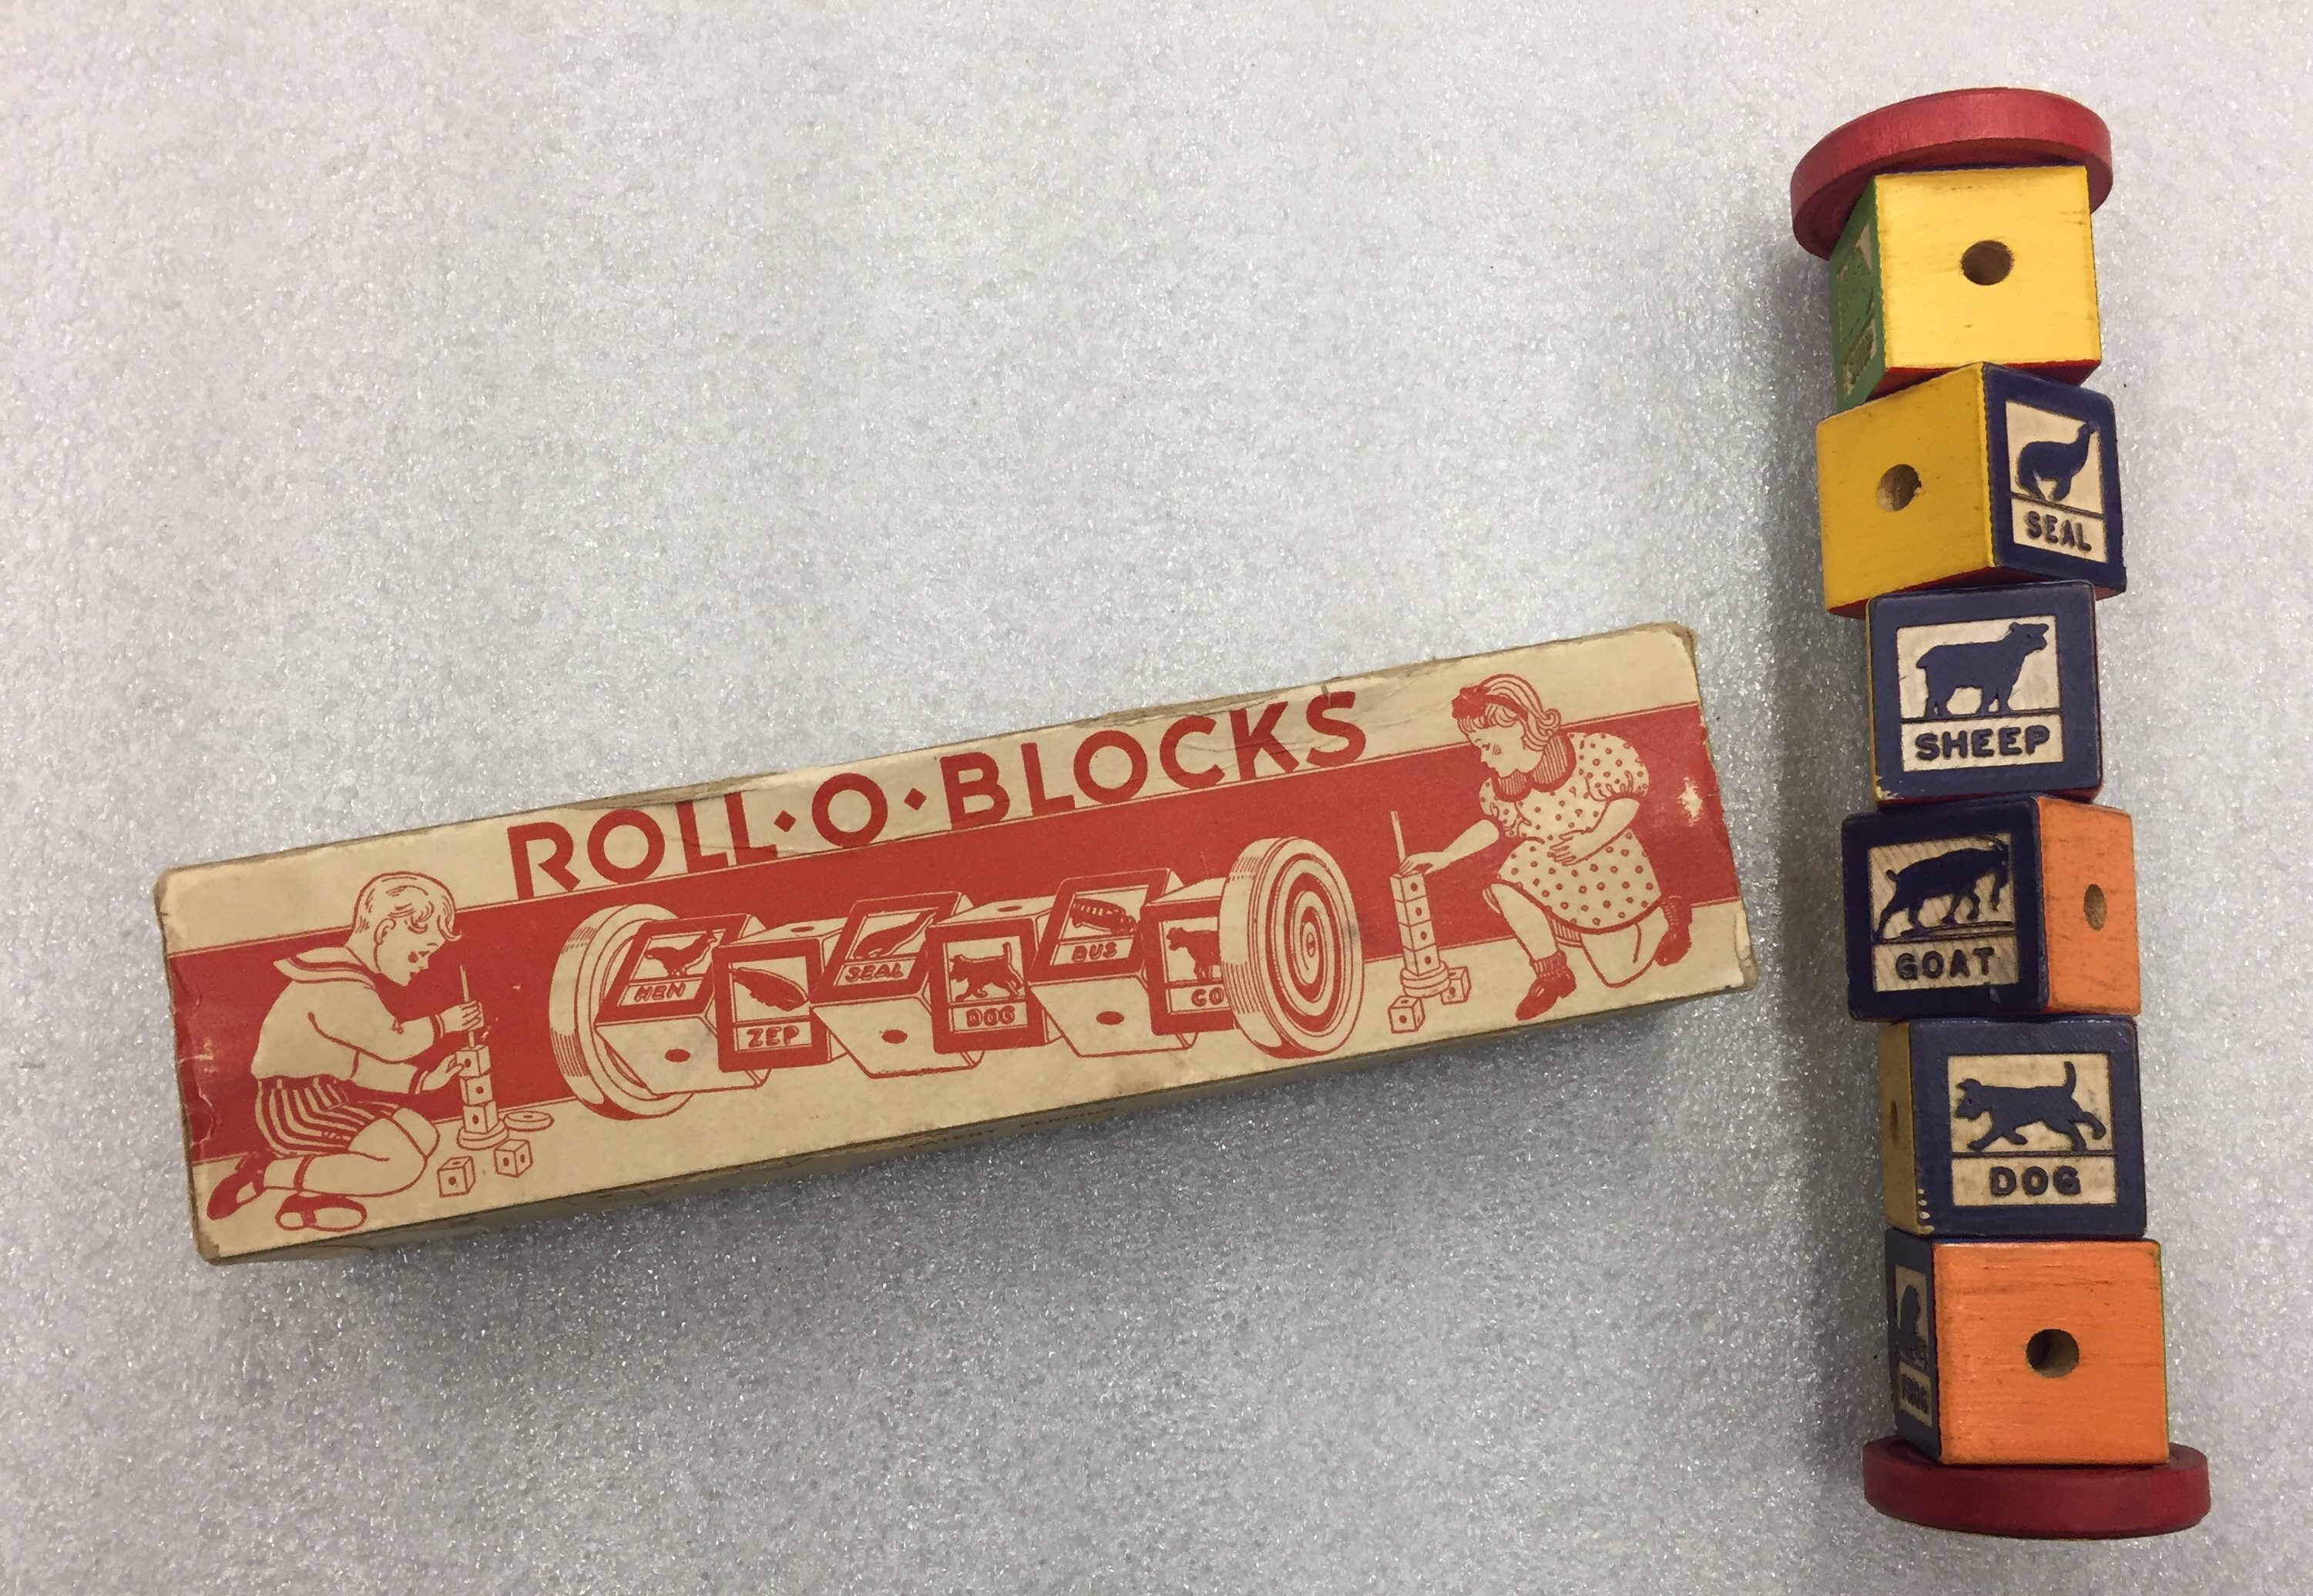 Roll-O-Blocks; Architectural Toy Collection